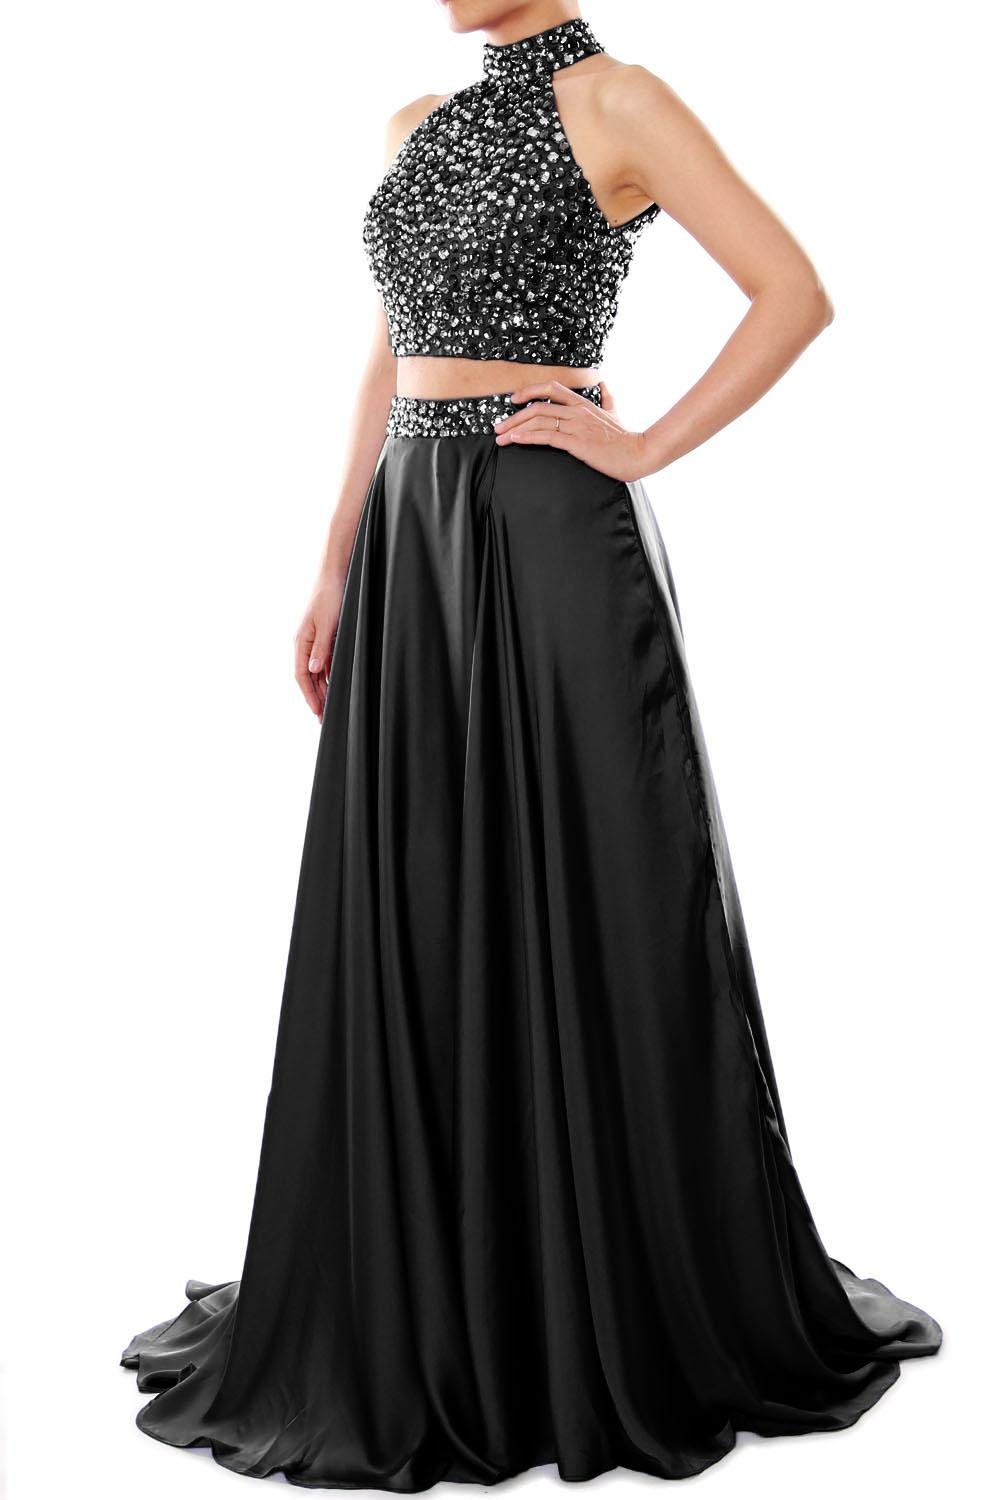 d5694a792a MACloth Women High Neck Two Piece Long Floor Length Maxi Crystal Satin Chiffon  Prom Party Dress Formal Evening Gown 160245 Online with  144.92 Piece on ...